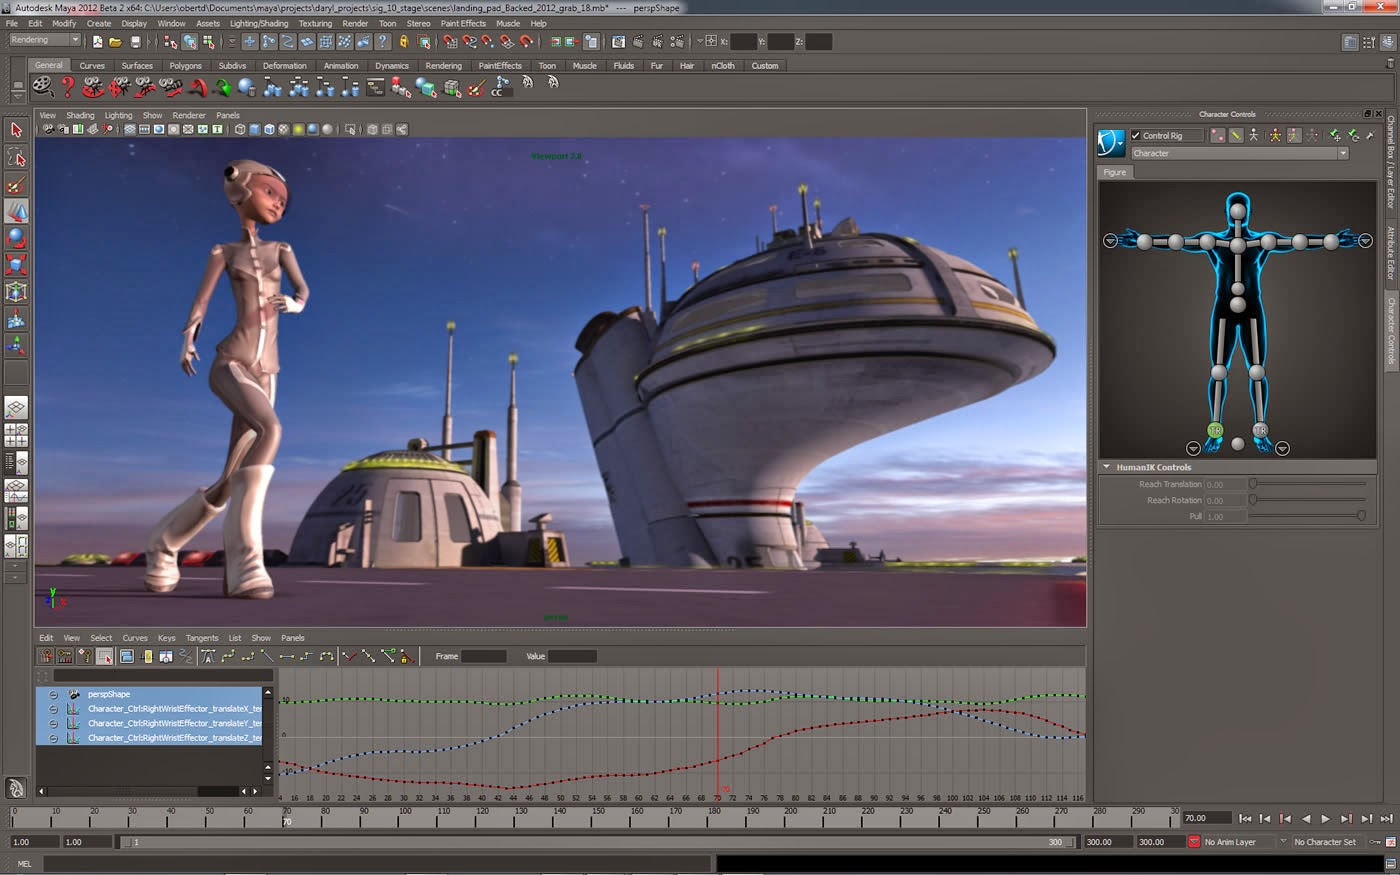 Maya 2012 full version free download pc game suite Computer art software